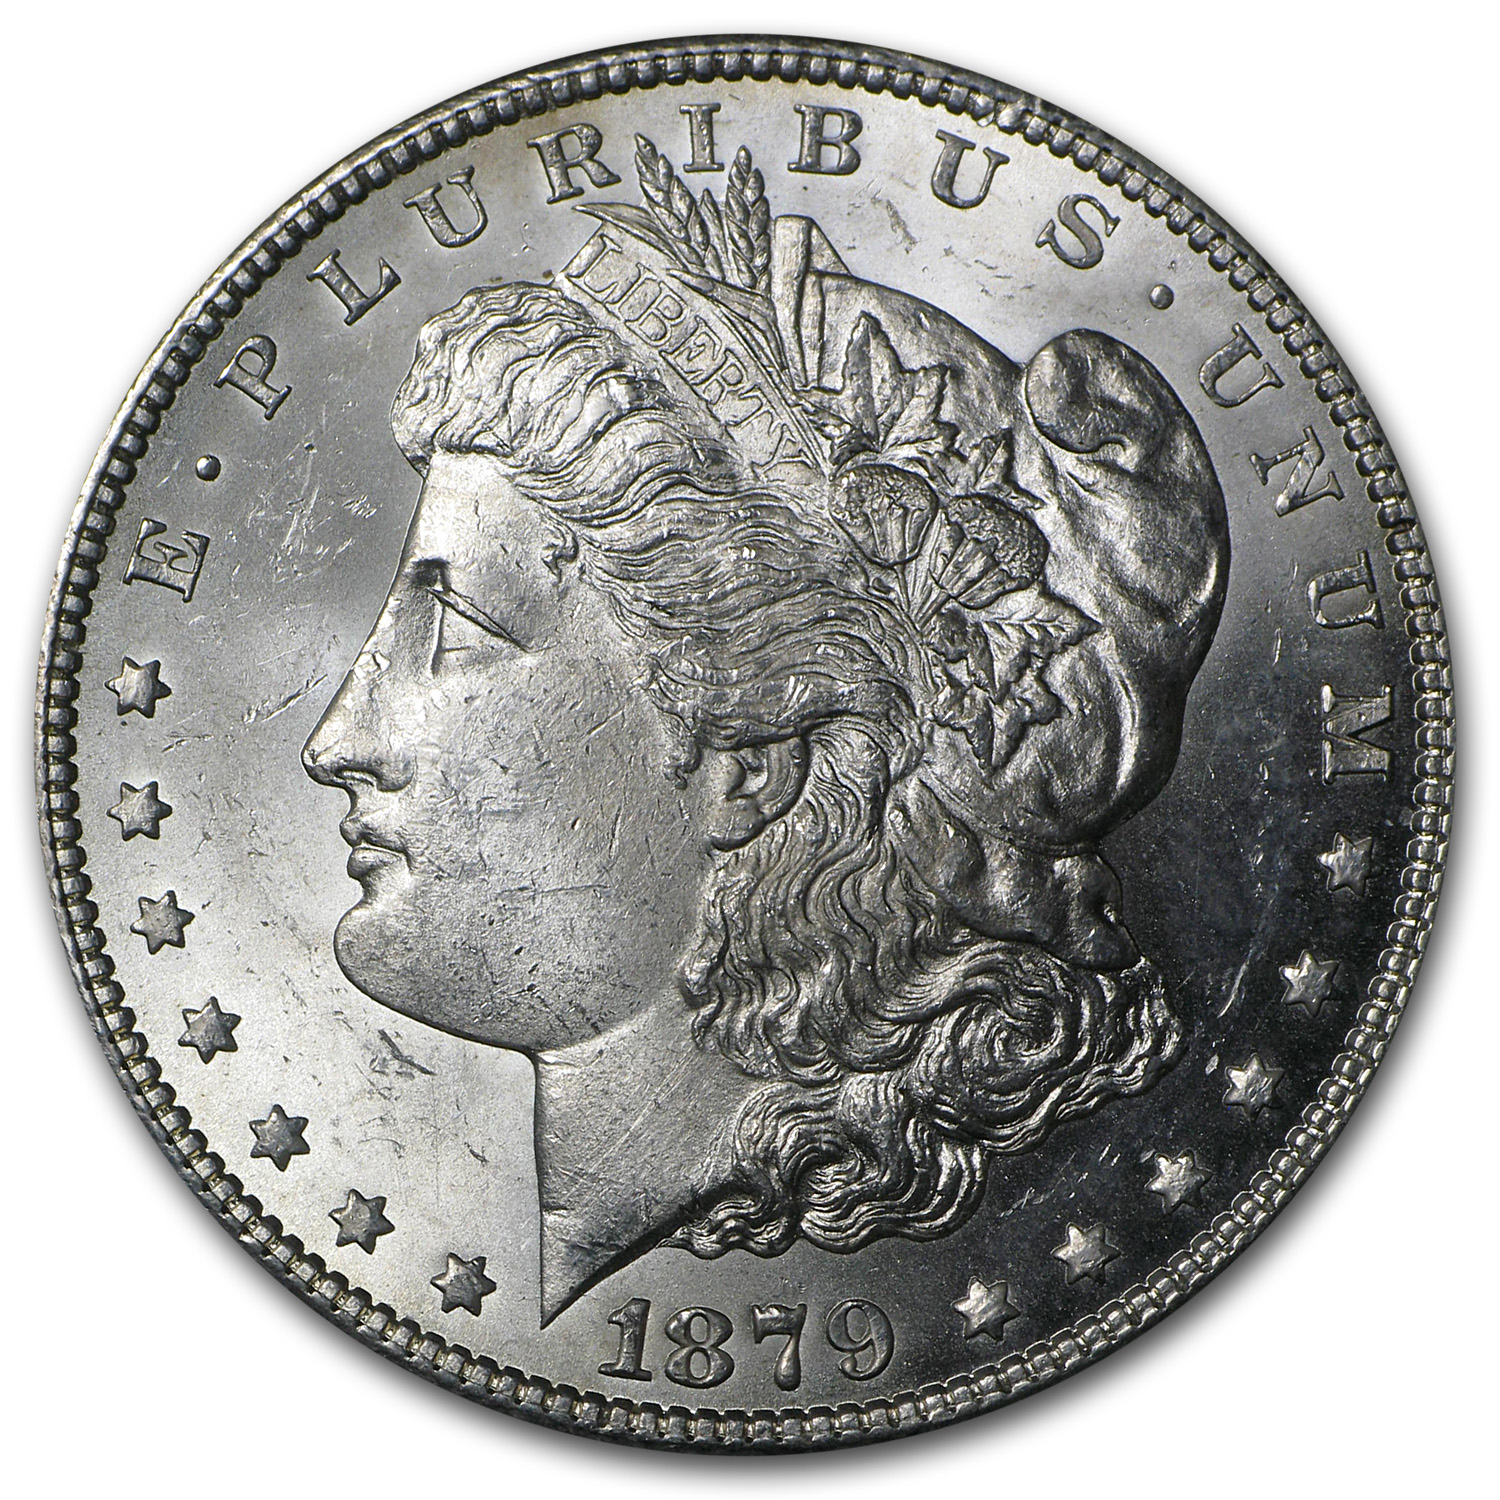 1879-S Morgan Dollar Rev of 78 BU